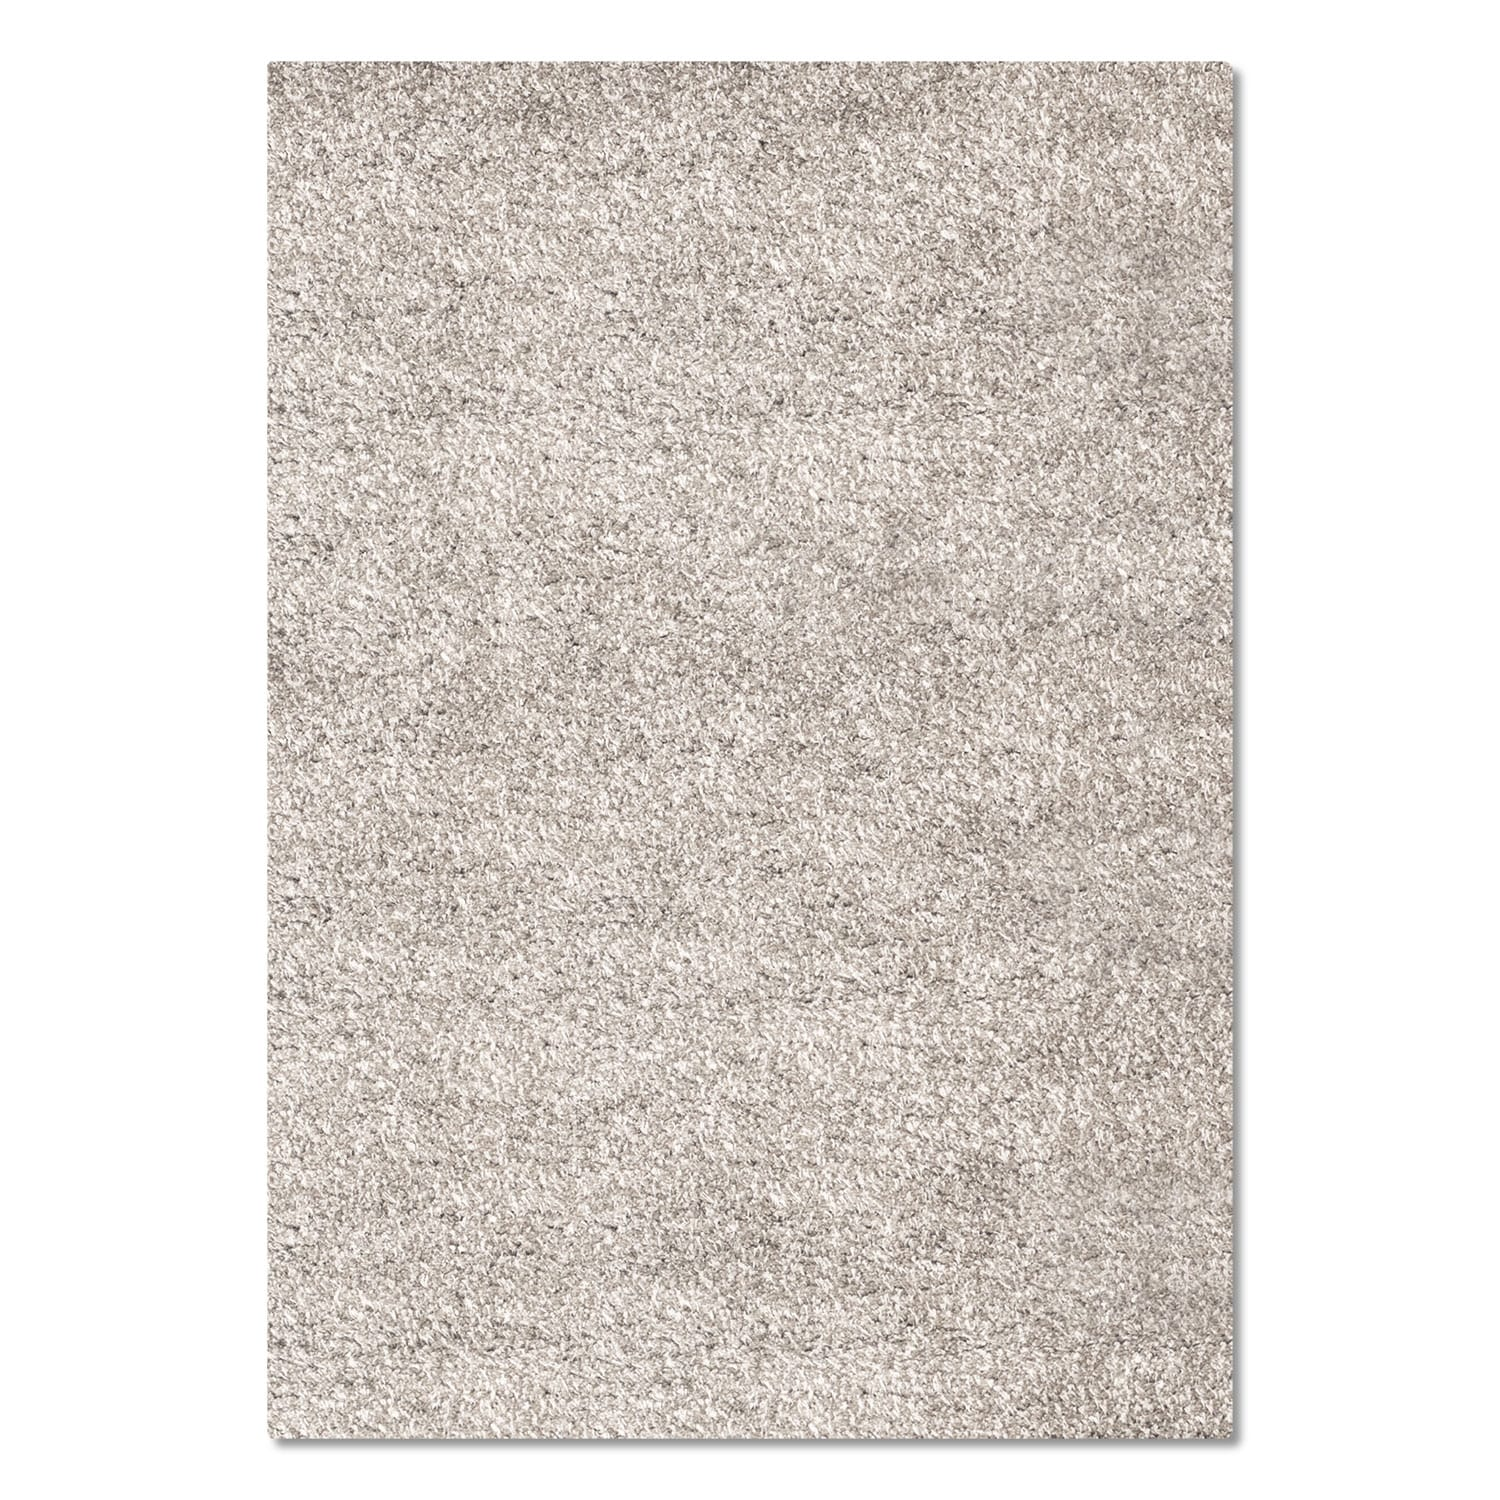 Rugs - Comfort Light Gray Shag Area Rug (5' x 8')